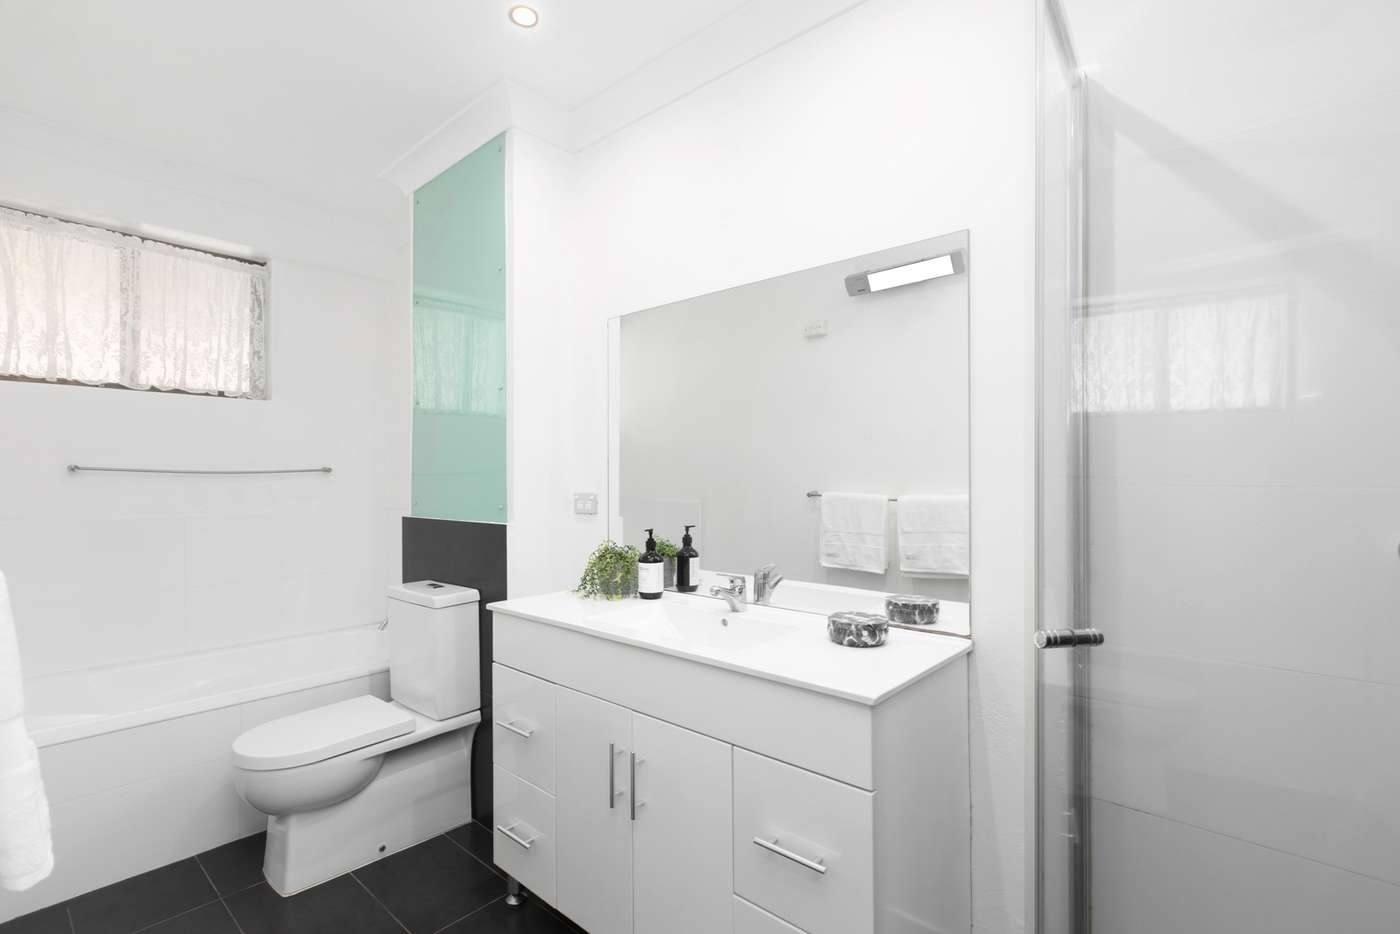 Fifth view of Homely unit listing, 12/62 Beane Street, Gosford NSW 2250